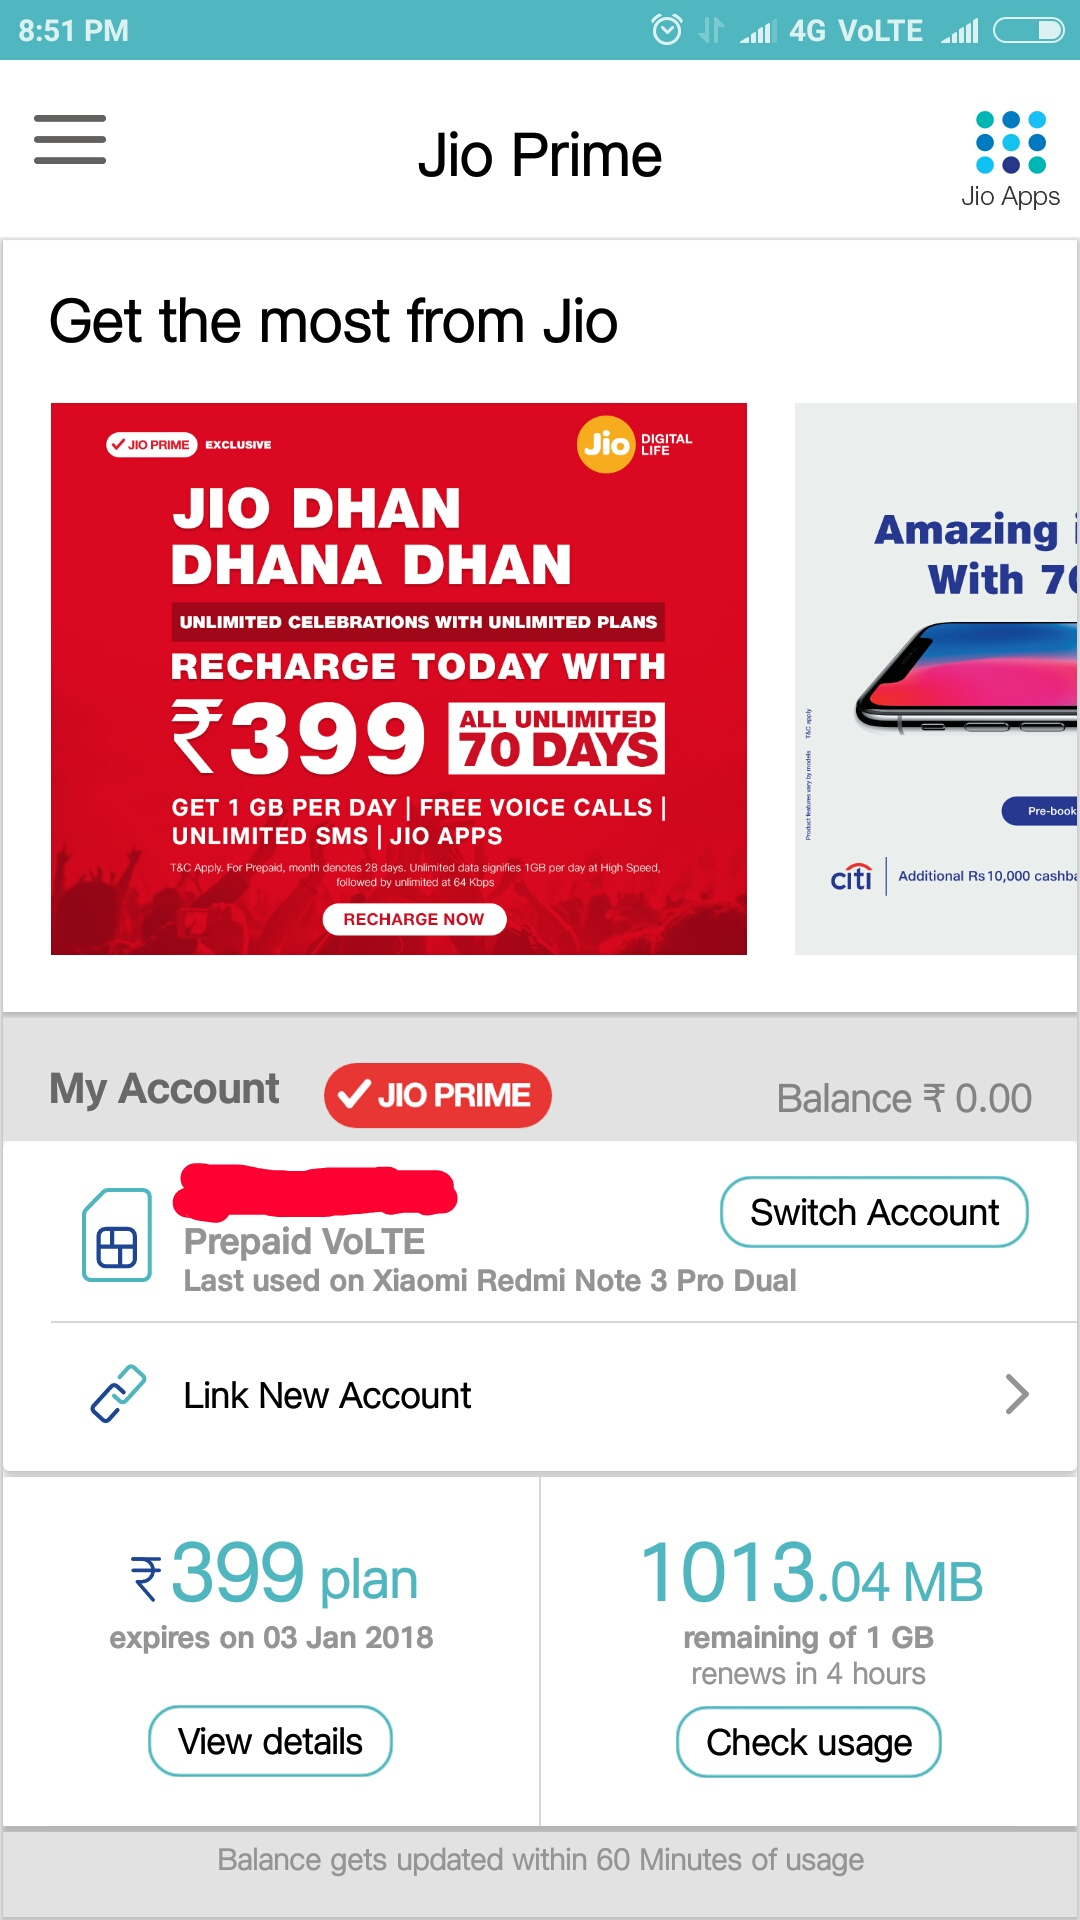 MyJio App - Page 2 - Jio apps discussion - Reliance Jio & Reliance